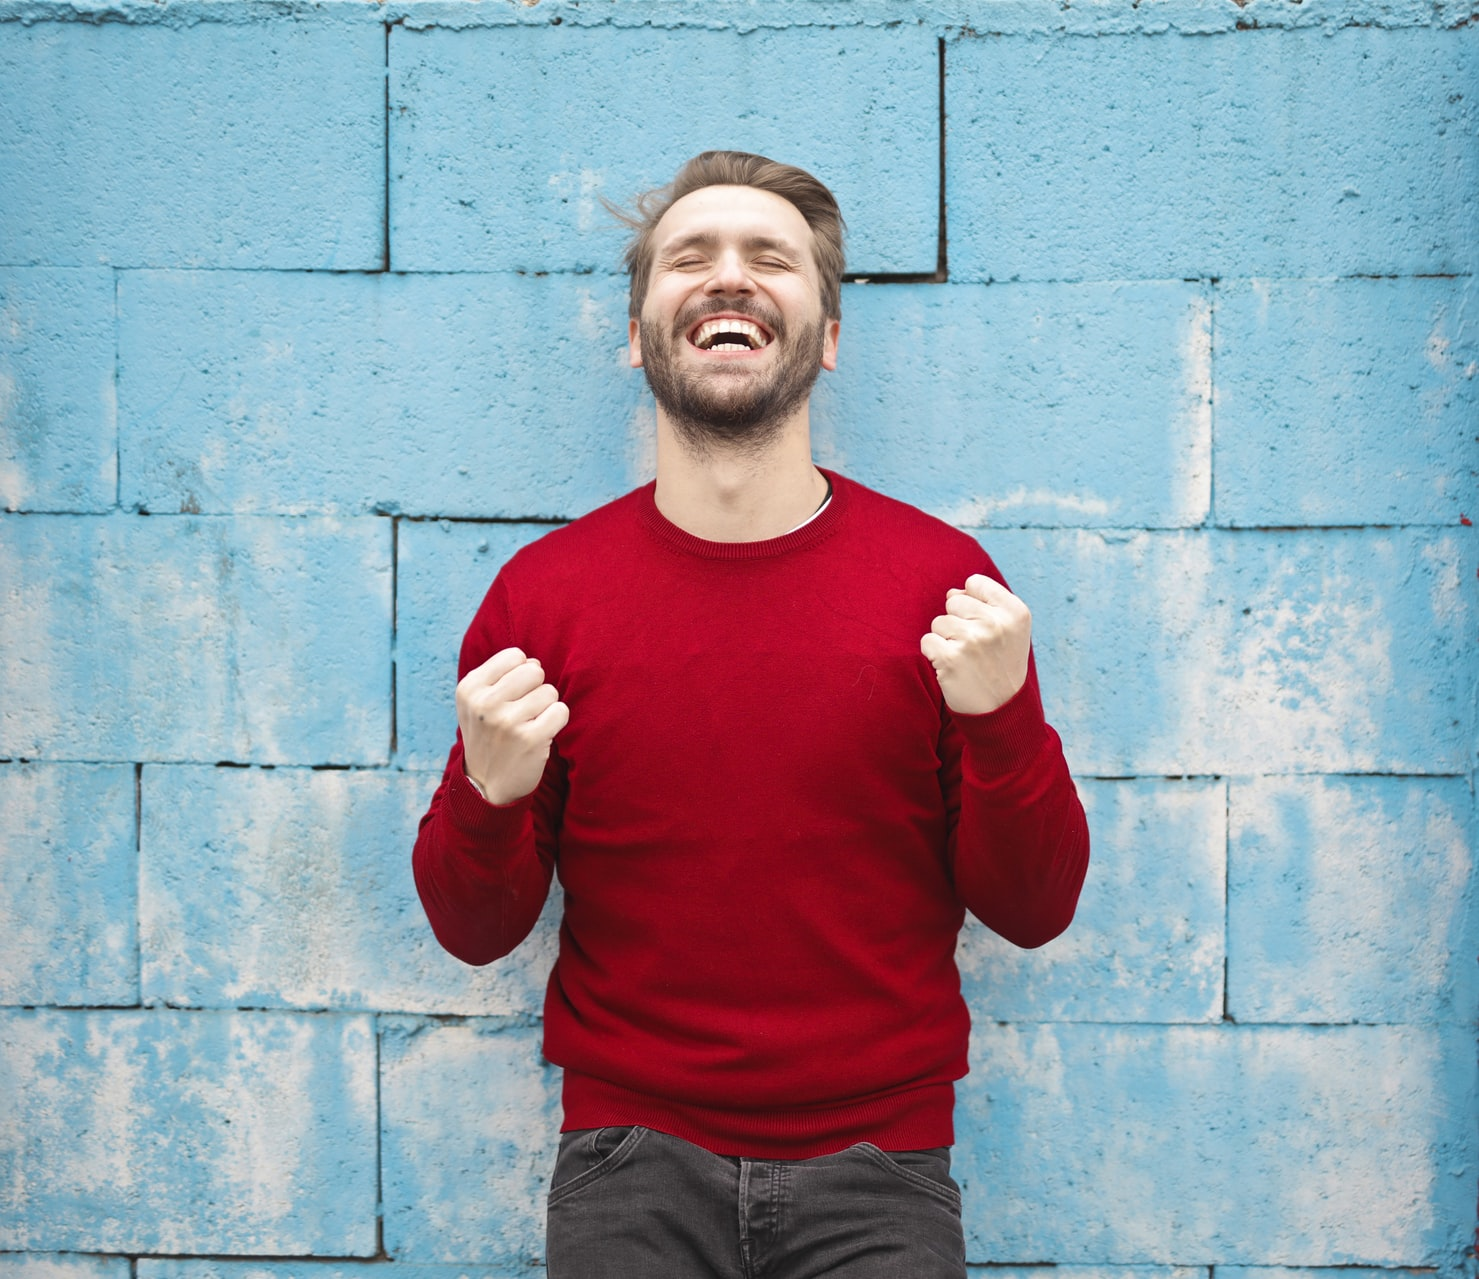 Man in a red sweater smiling in front of a blue wall